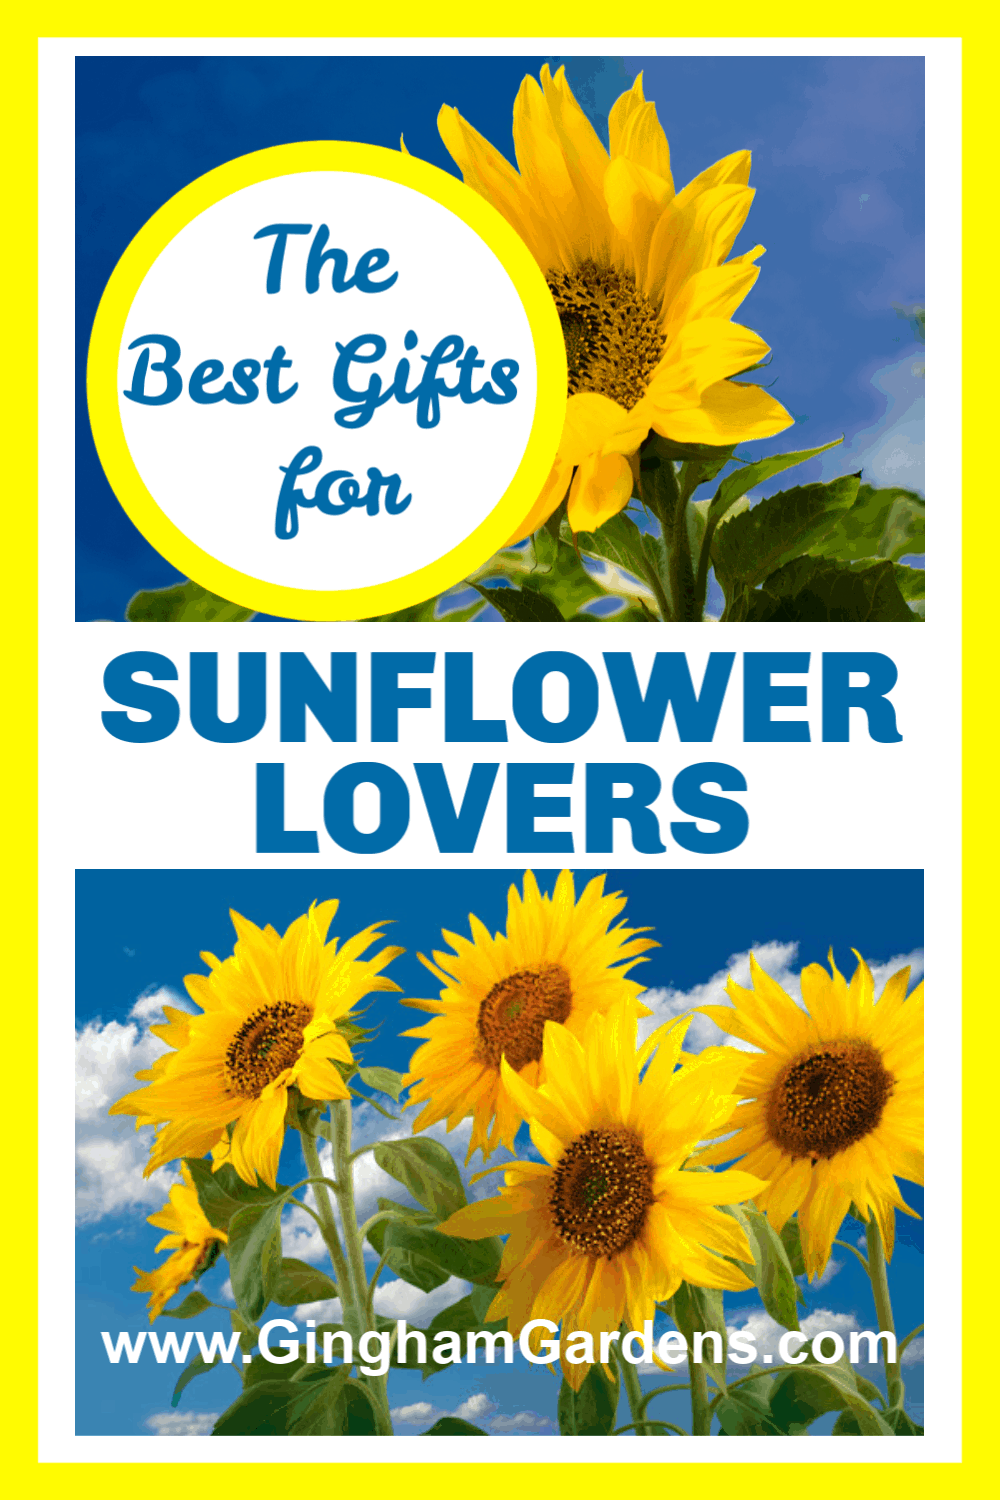 Images of Sunflowers with text overlay - The Best Gifts for Sunflower Lovers